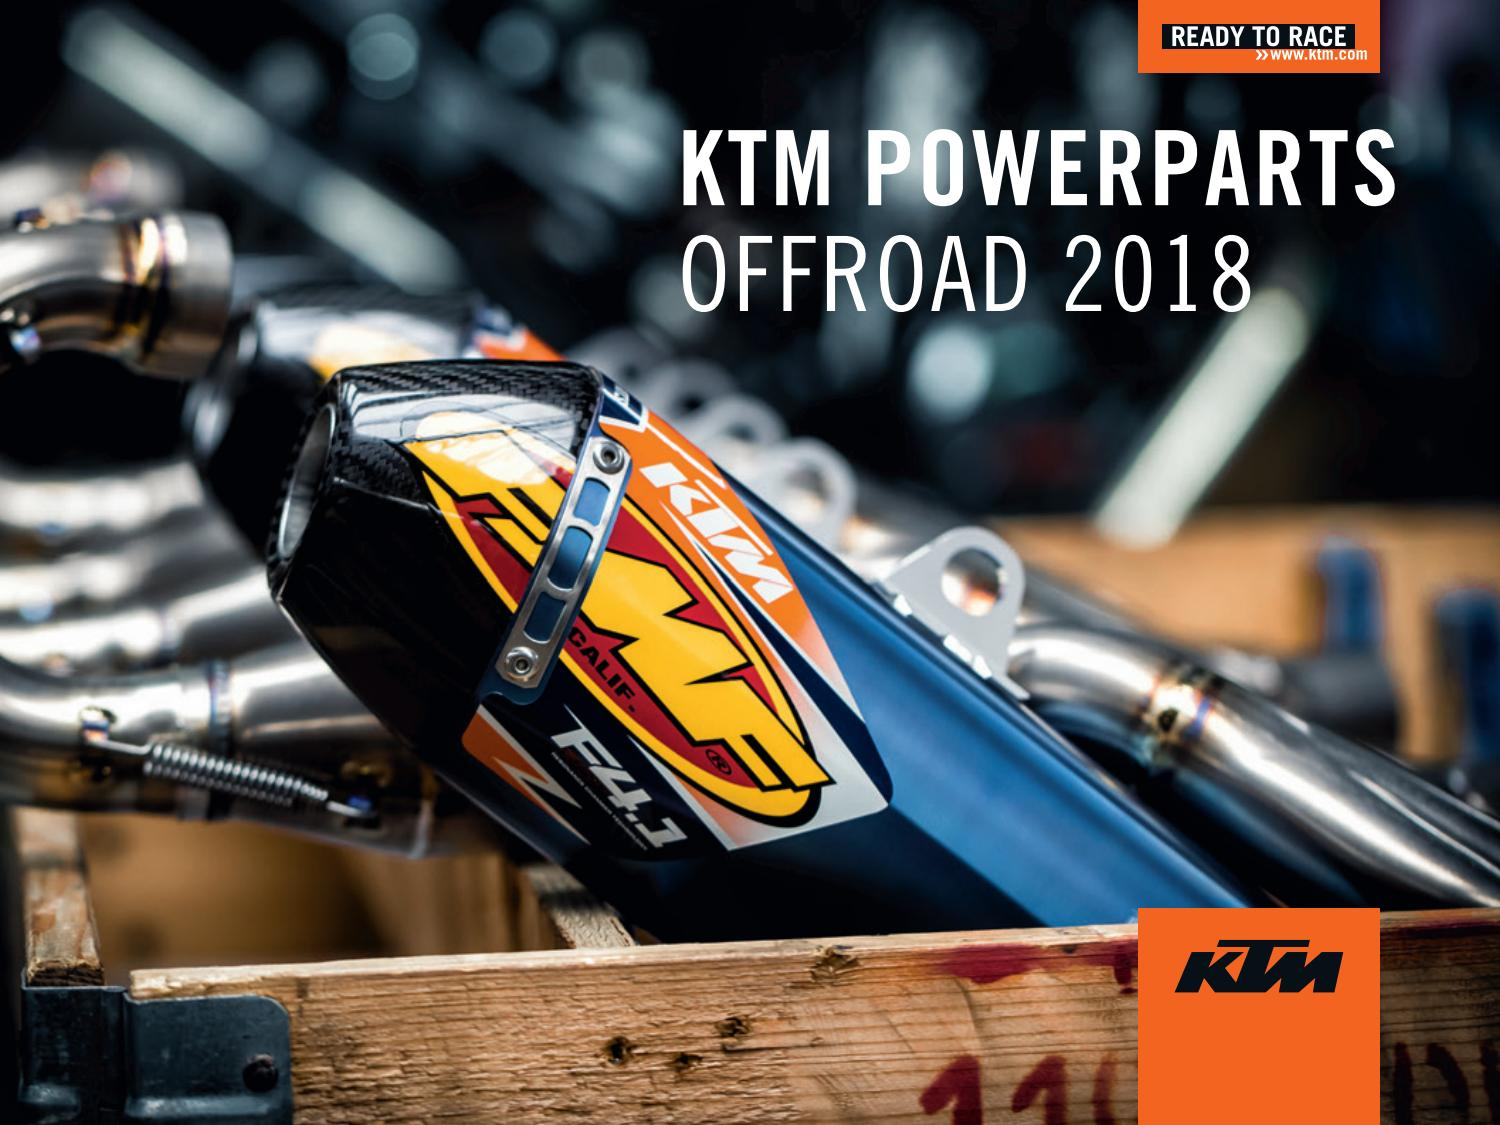 Ktm Powerparts Offroad Catalog 2018 Usa By Group Issuu F 16 Wiring Harness